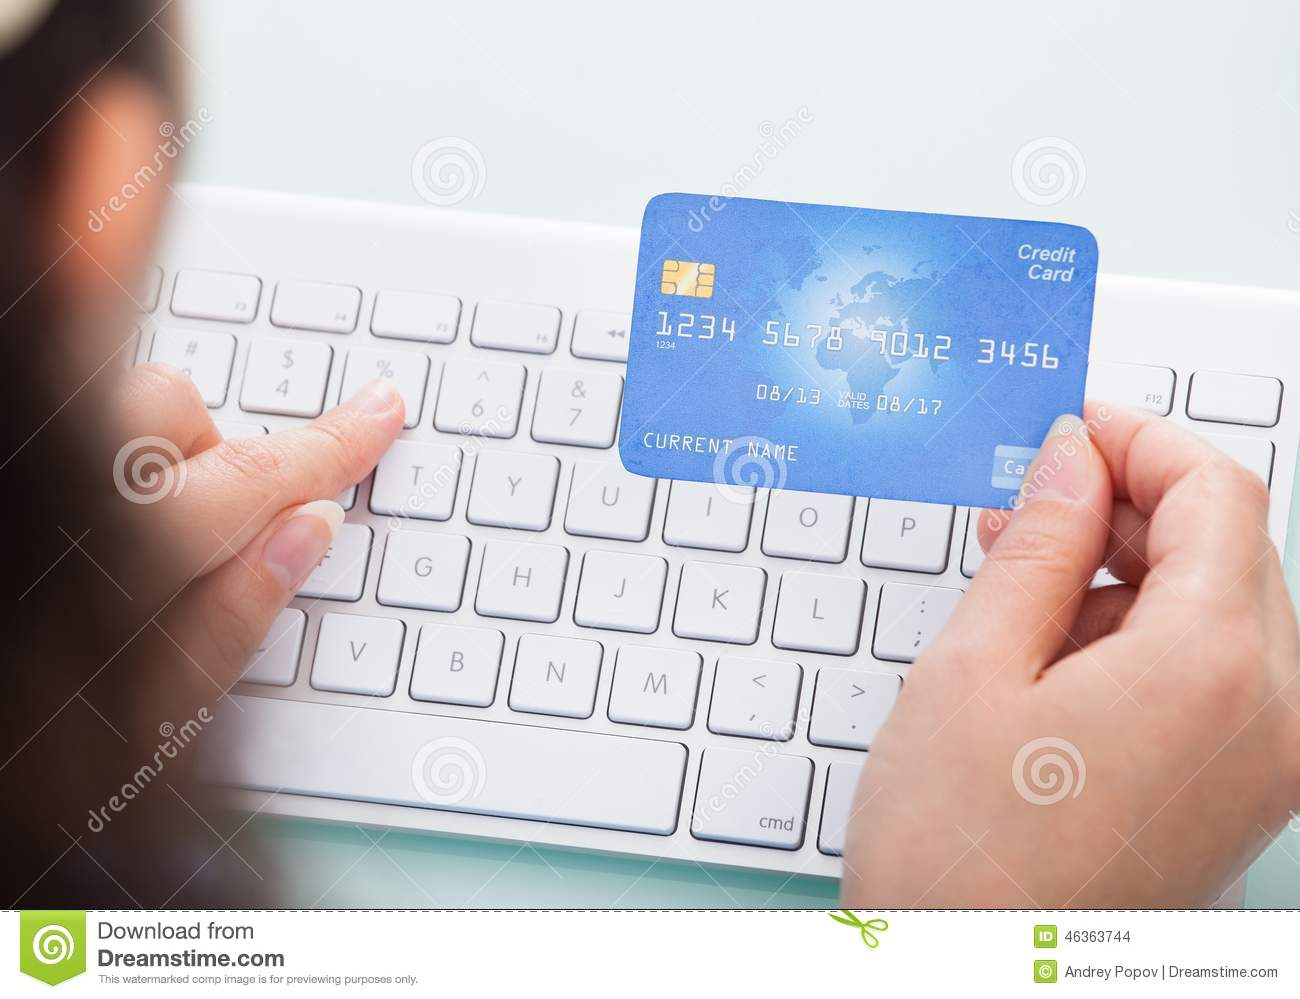 woman entering credit card information